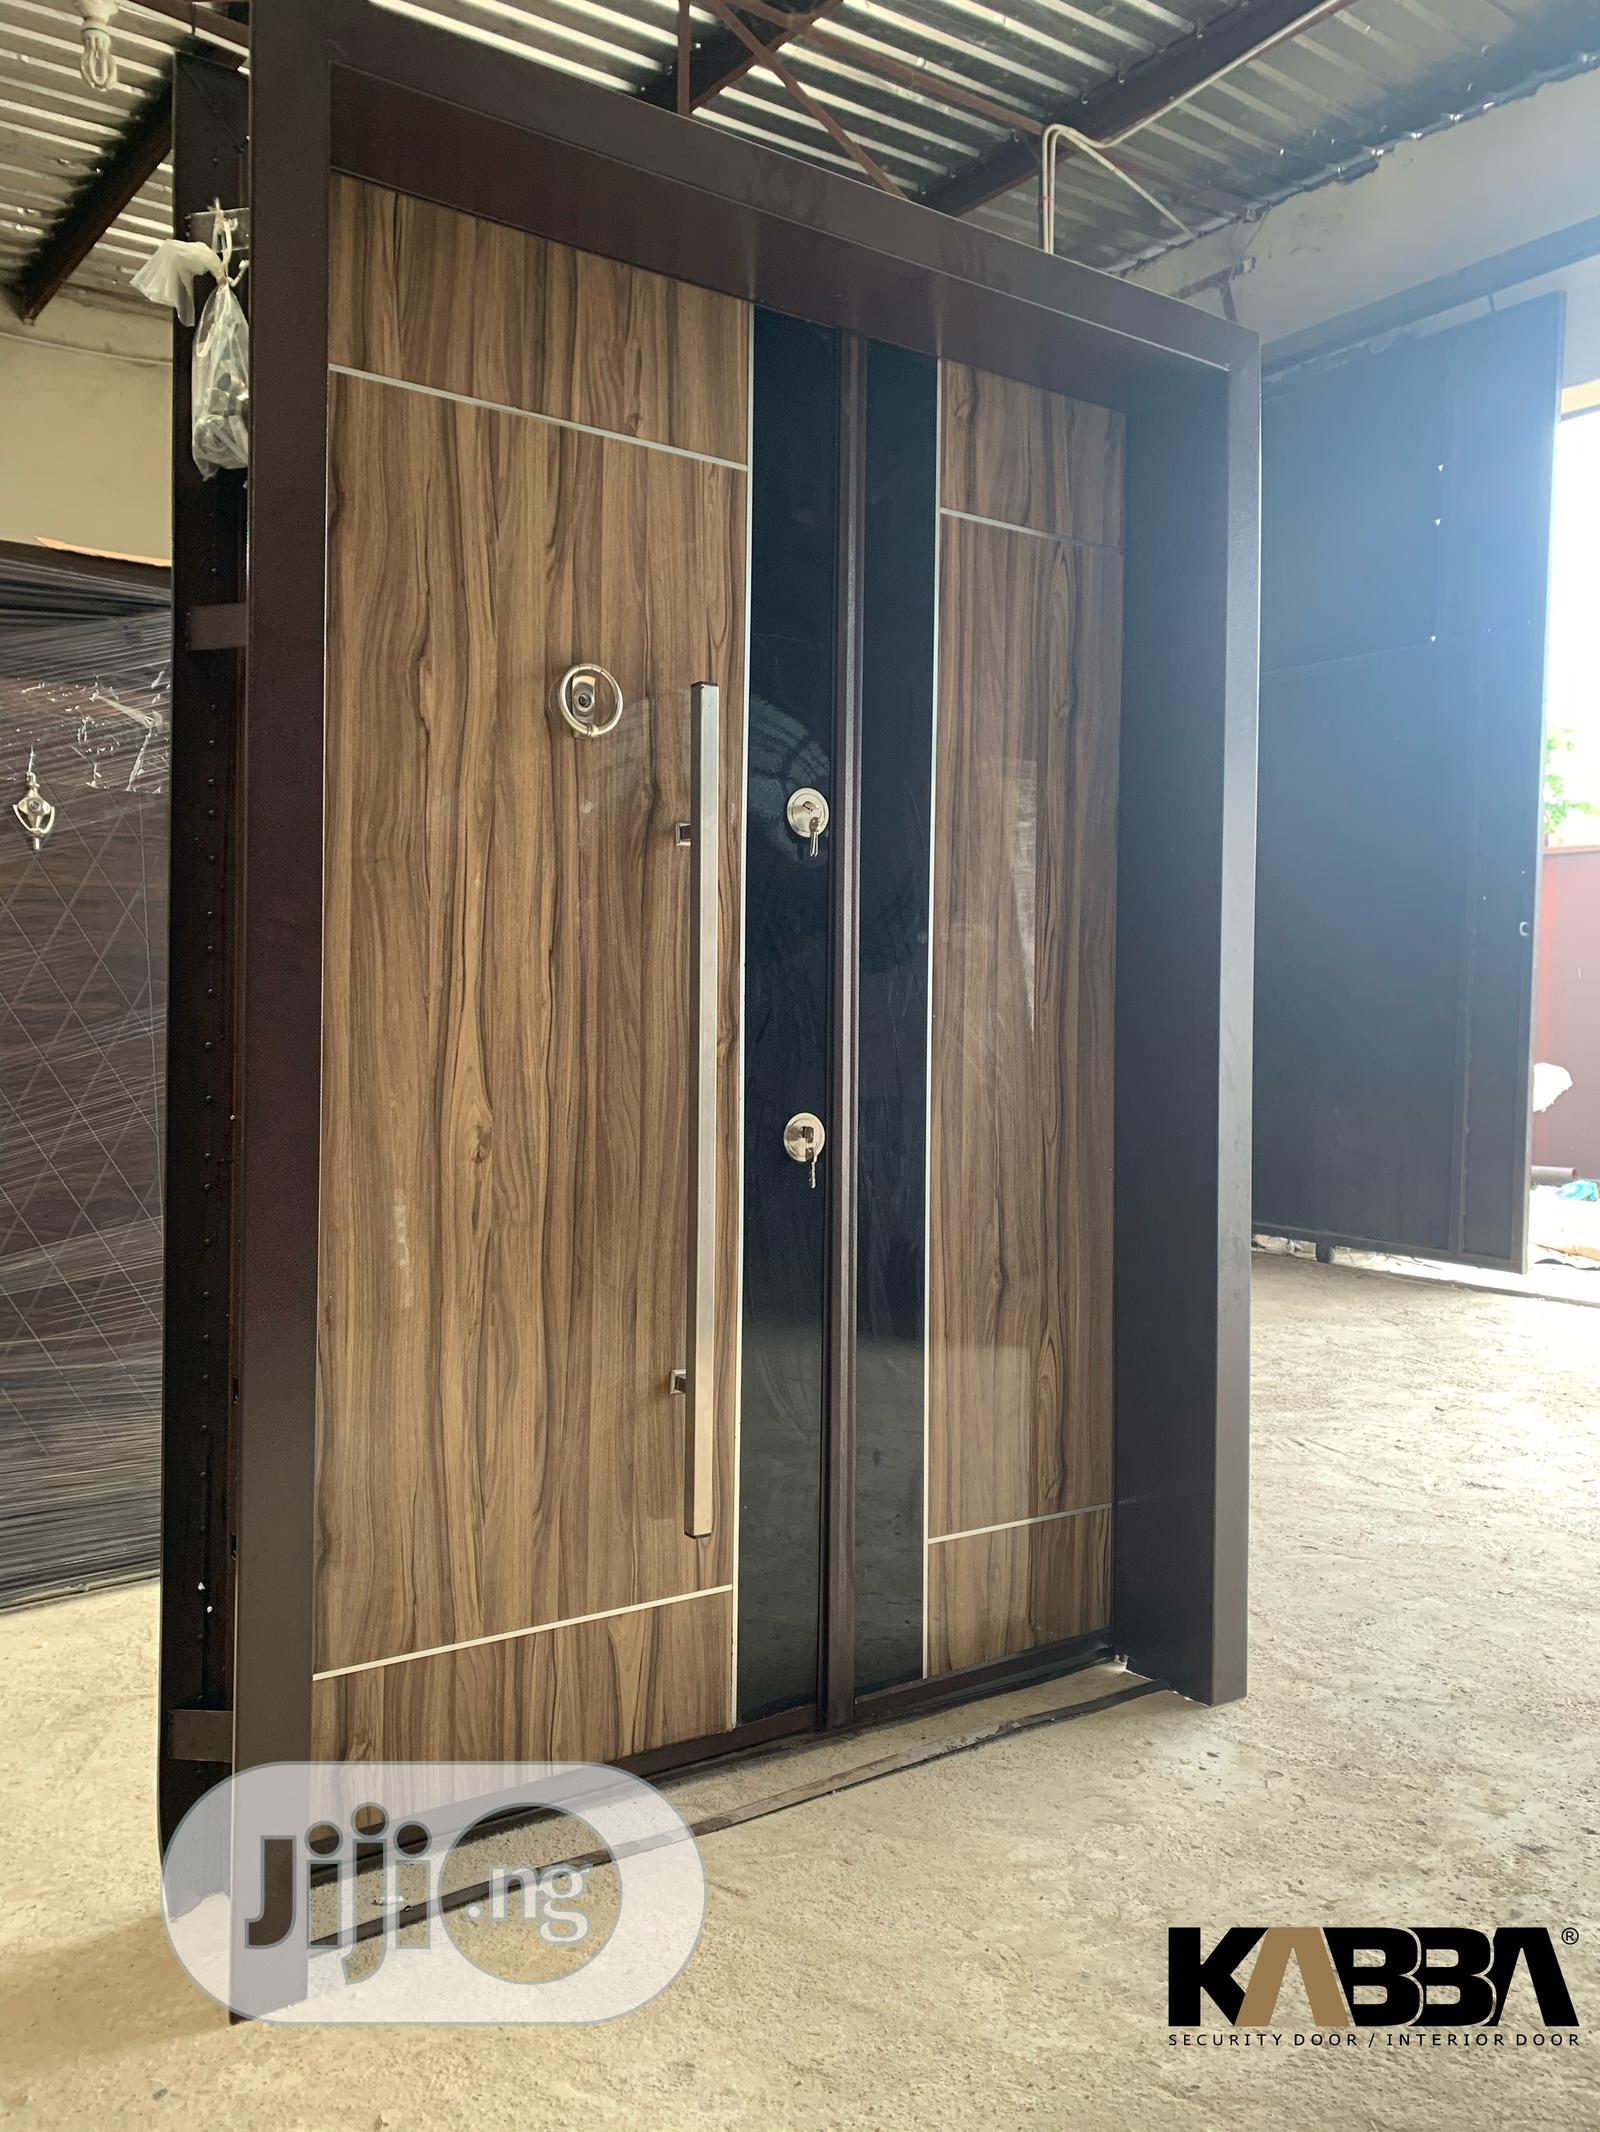 Turkish Security Door Special Size (1.5 X 2.4) | Doors for sale in Kubwa, Abuja (FCT) State, Nigeria